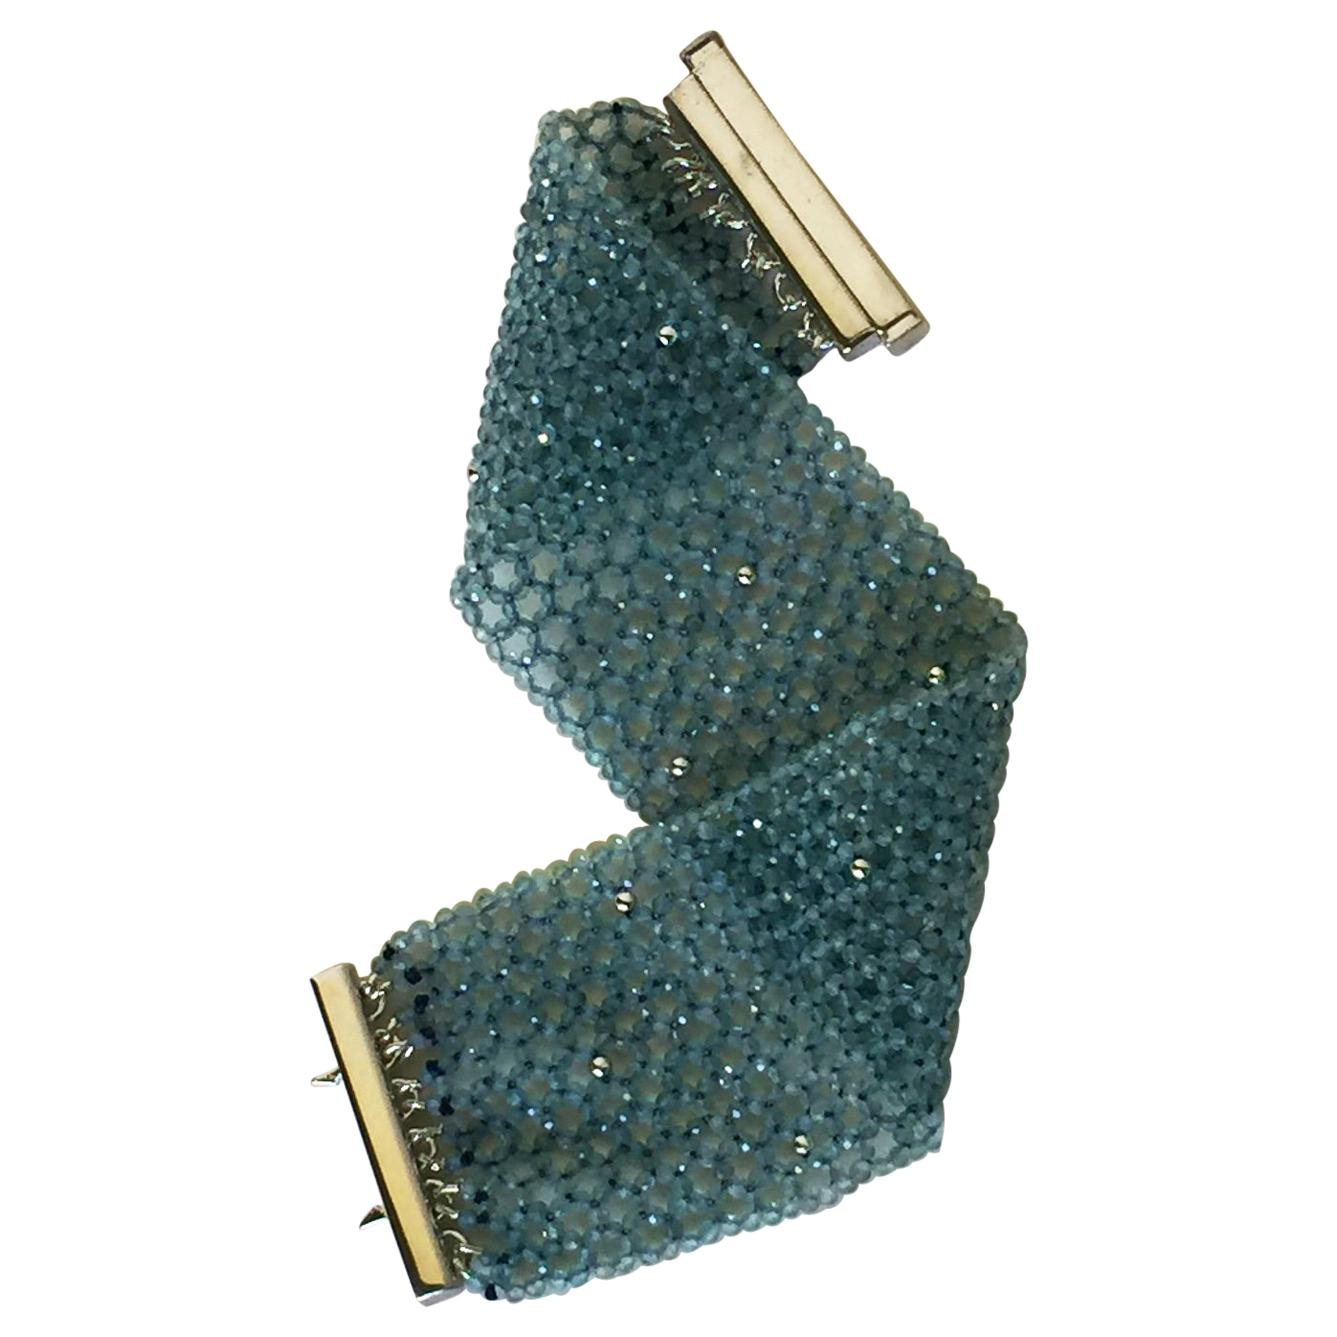 Marina J. Woven Aquamarine & 14K Gold Cuff Bracelet with Sterling Silver Clasp